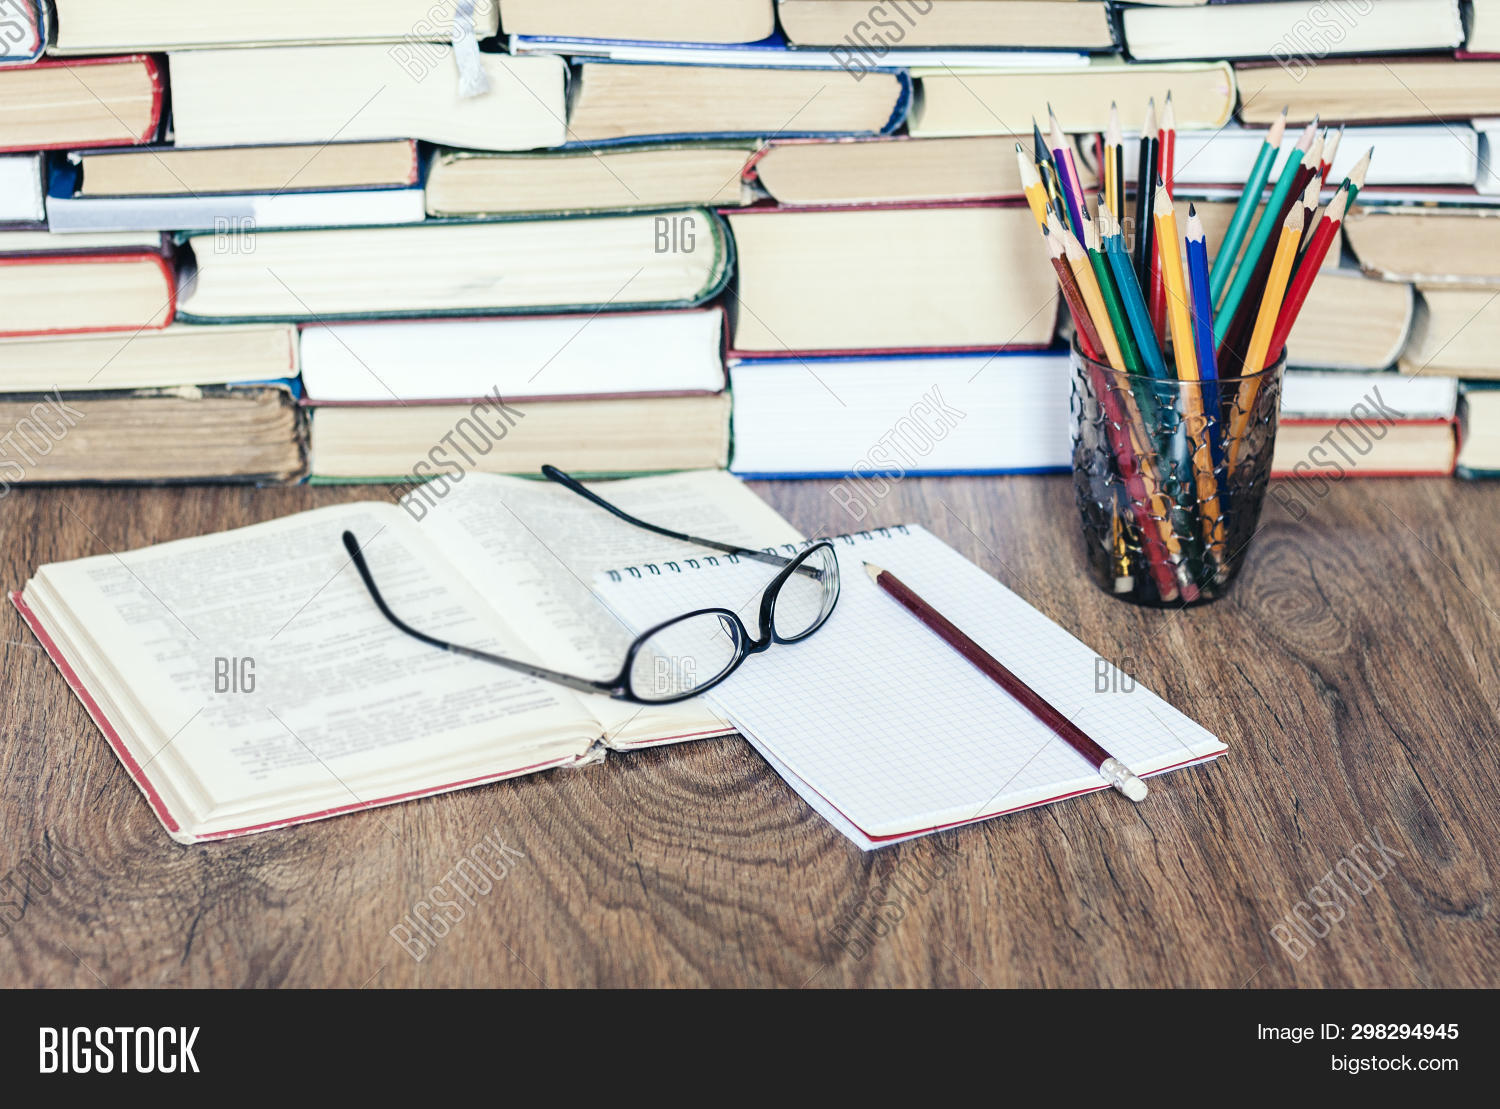 Stack Of Books, Hardback Books On Wooden Table, Open Book, Notebook And Glasses, Copy Space For Text